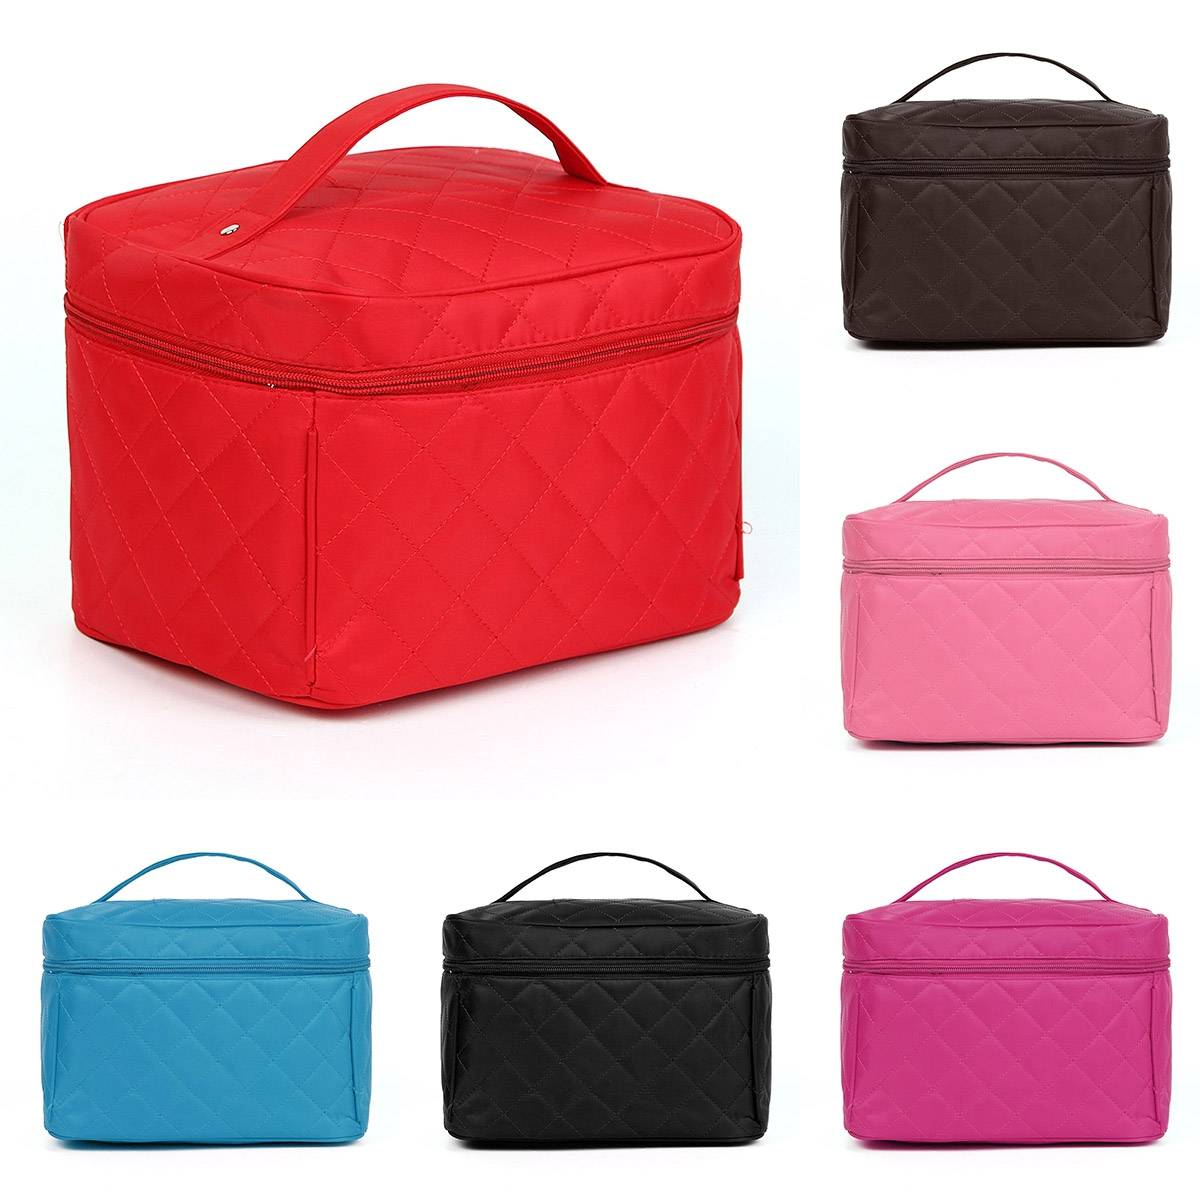 Travel Luggage Organiser Lady Makeup Organiser Cosmetic Container Case Toiletry Travel Bag